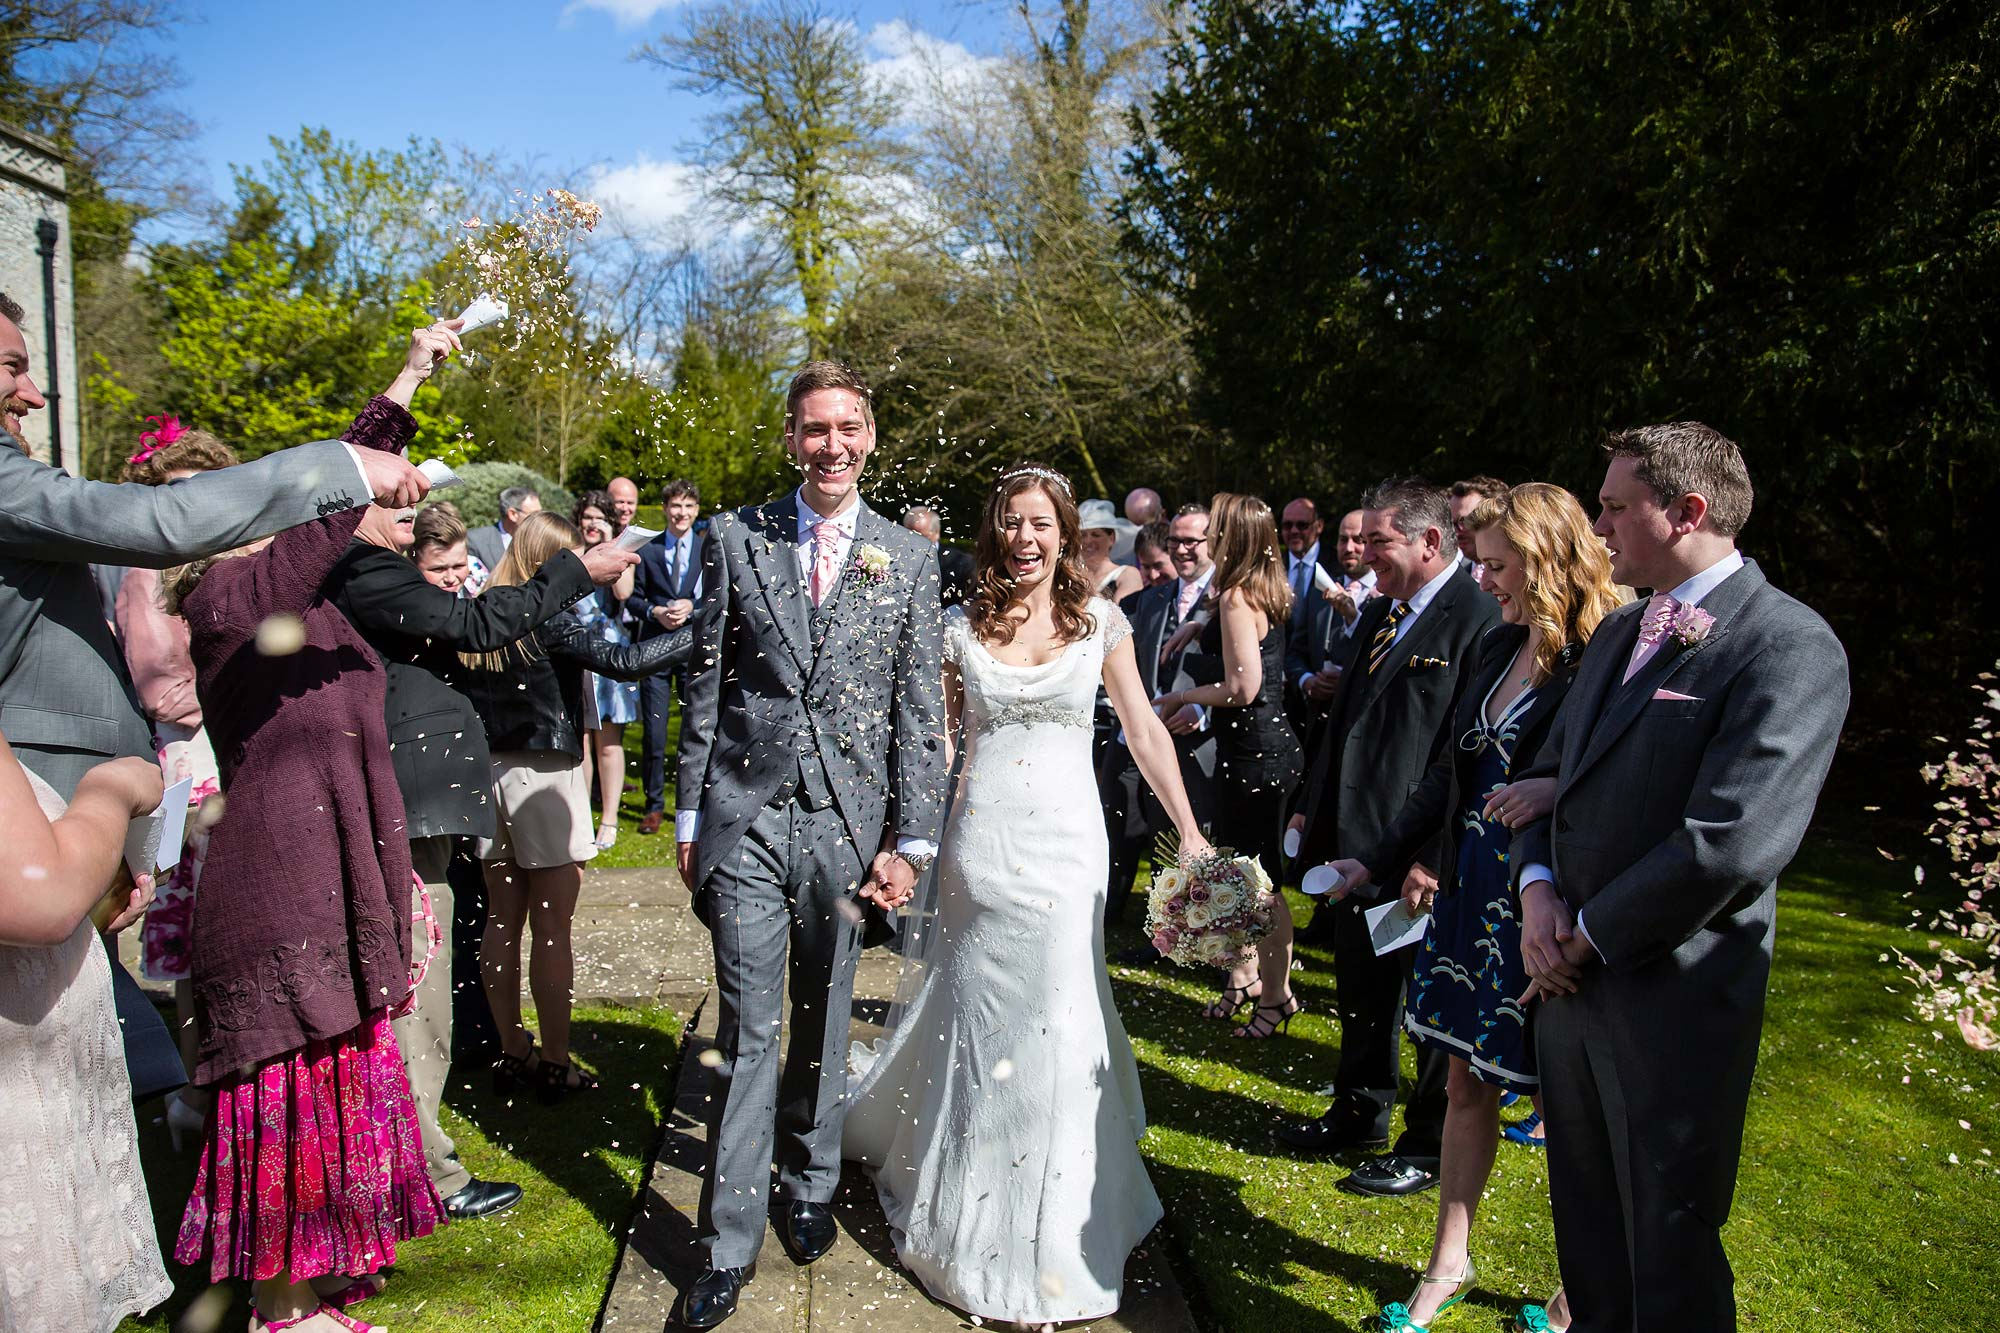 The bride and groom are showered in confetti outside Hengrave Hall church